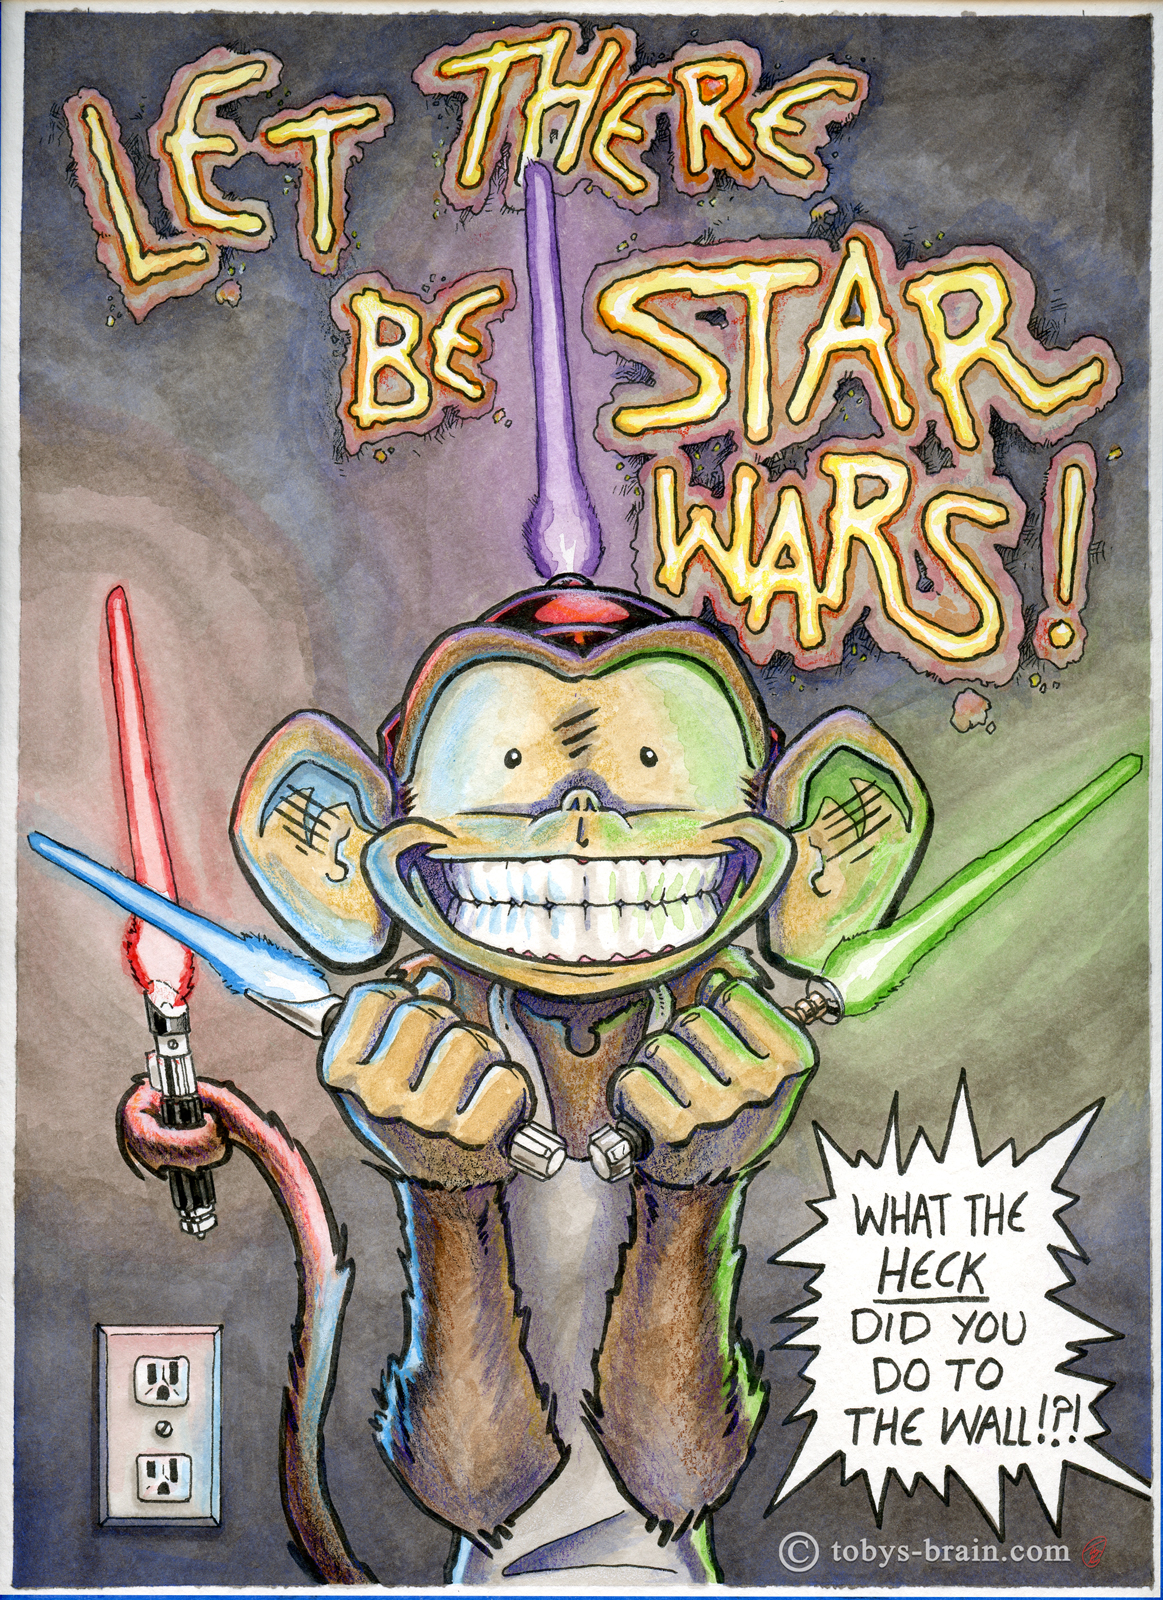 toby-gray-pmd-let-there-be-star-wars-colored-pencil